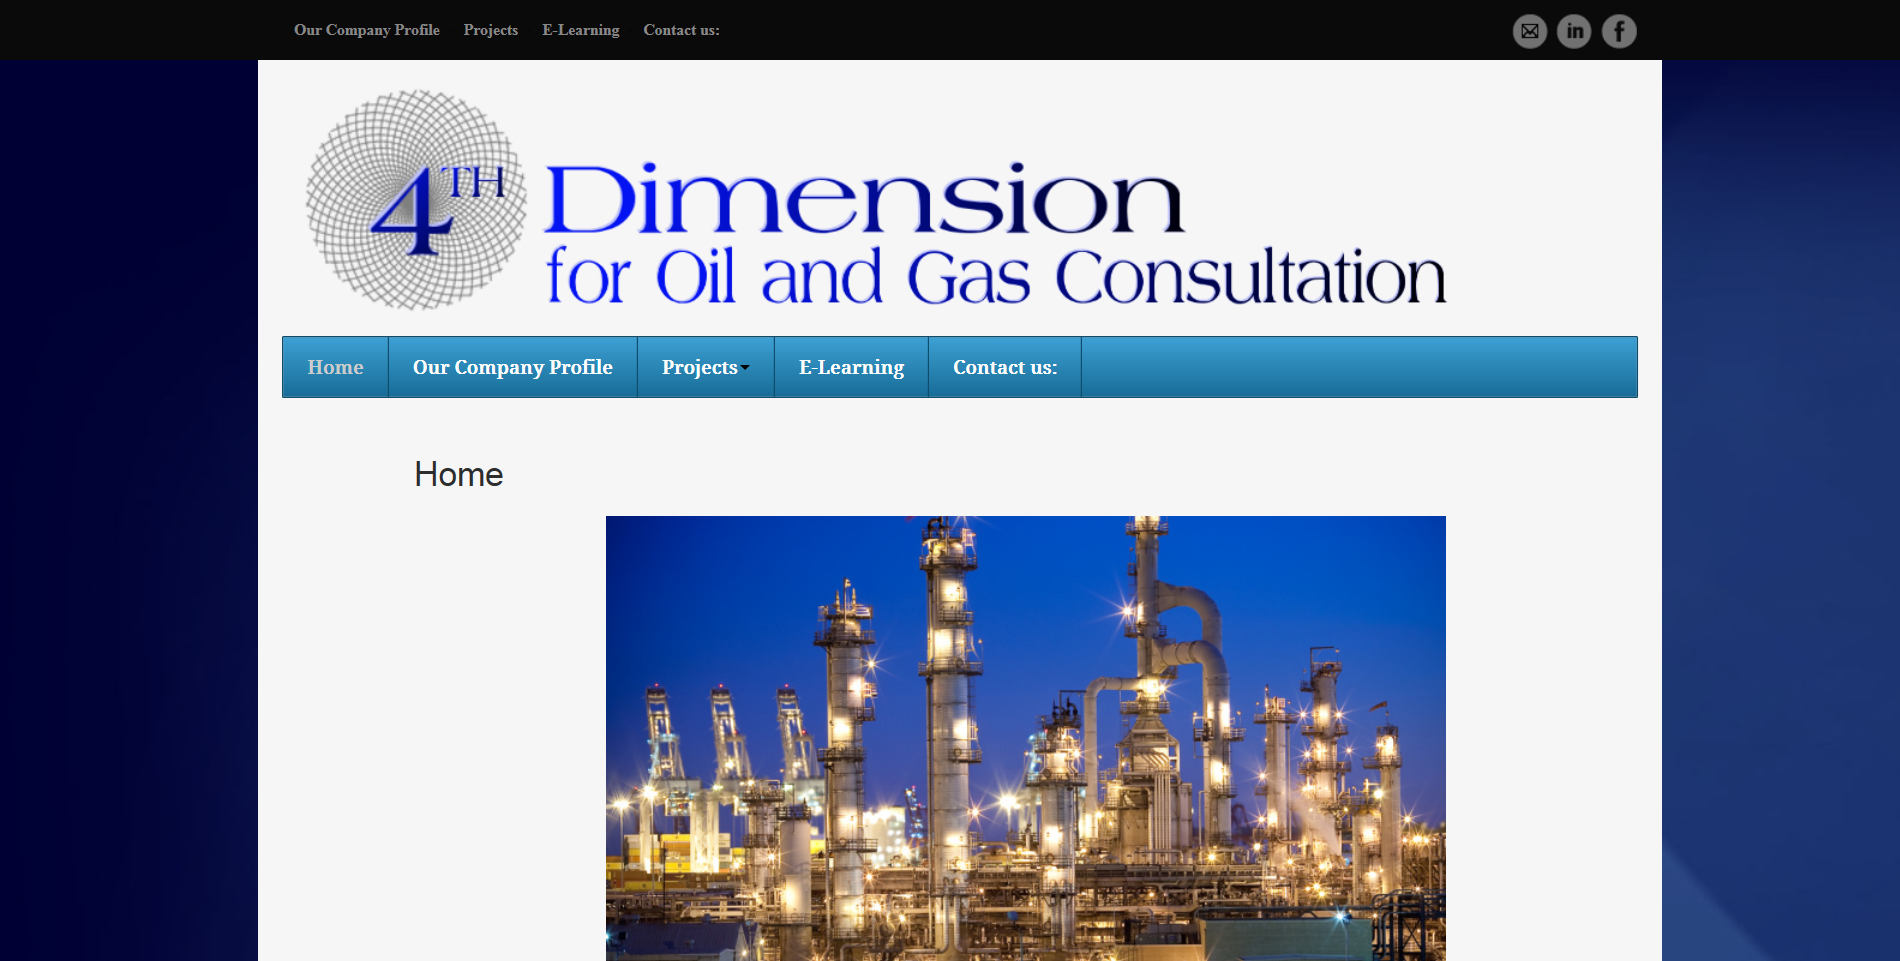 4th Dimension for Oil and Gas Consultation